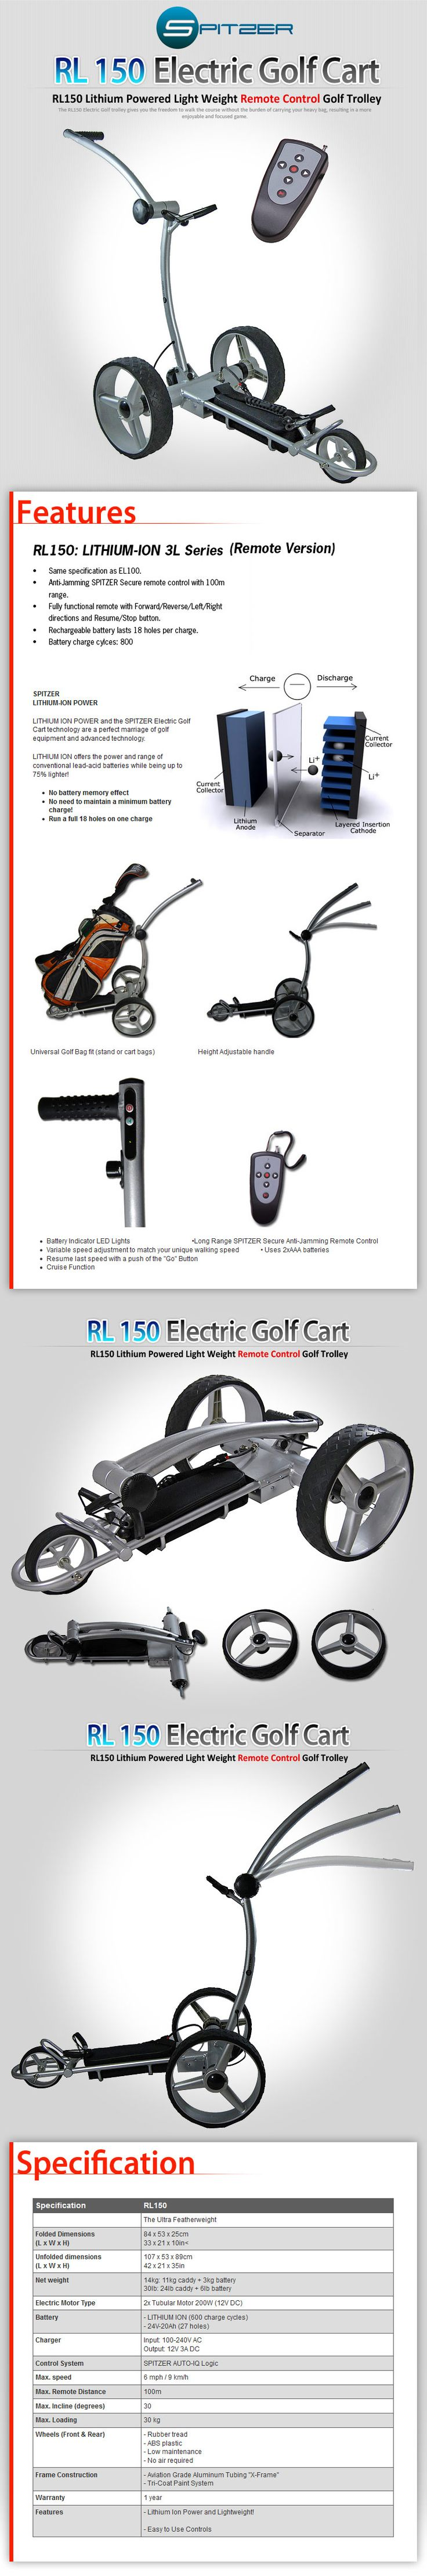 Golf Carts | Push | Pull | Cheap | Buy | Playability Guarantee | Spitzer RL150 Lithium Powered Light Weight Remote Control Golf Trolley, Spitzer Electric Golf Cart, Discount Electric Golf Cart, Olympic Golf